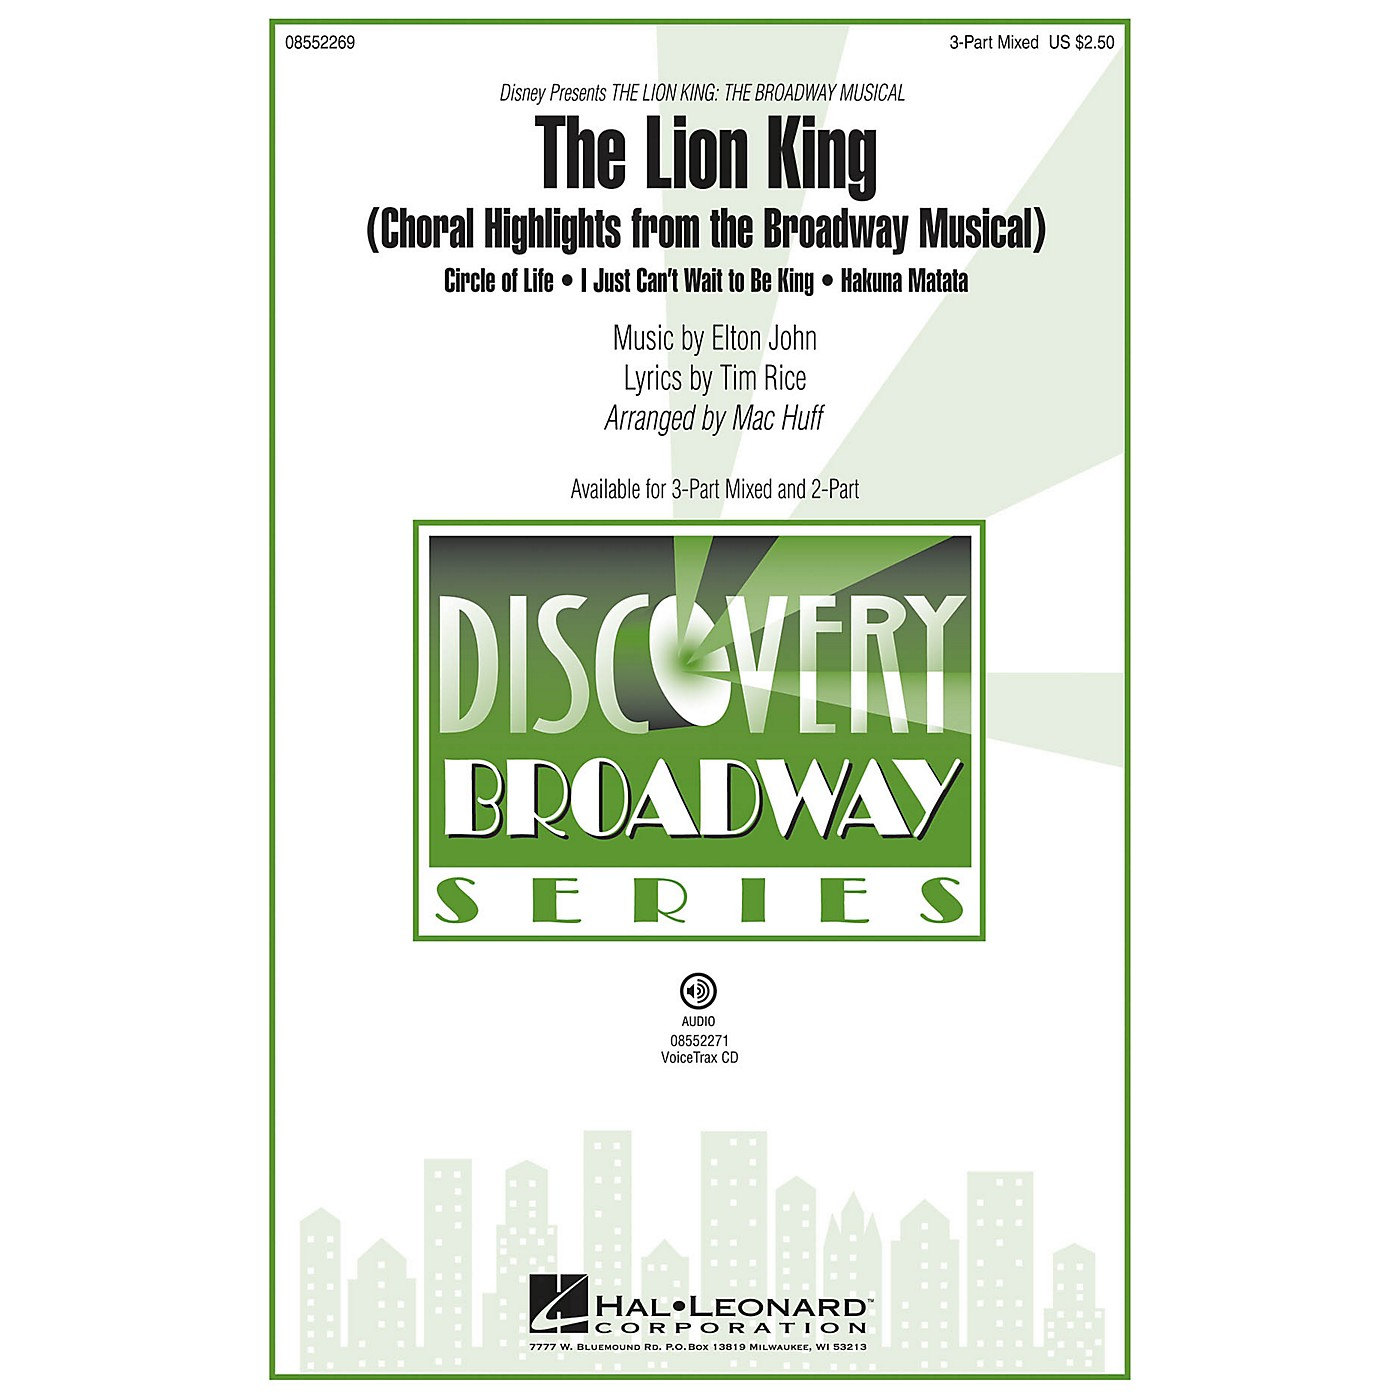 Hal Leonard The Lion King (Choral Highlights from the Broadway Musical) Discovery Level 2 2-Part Arranged by Mac Huff thumbnail